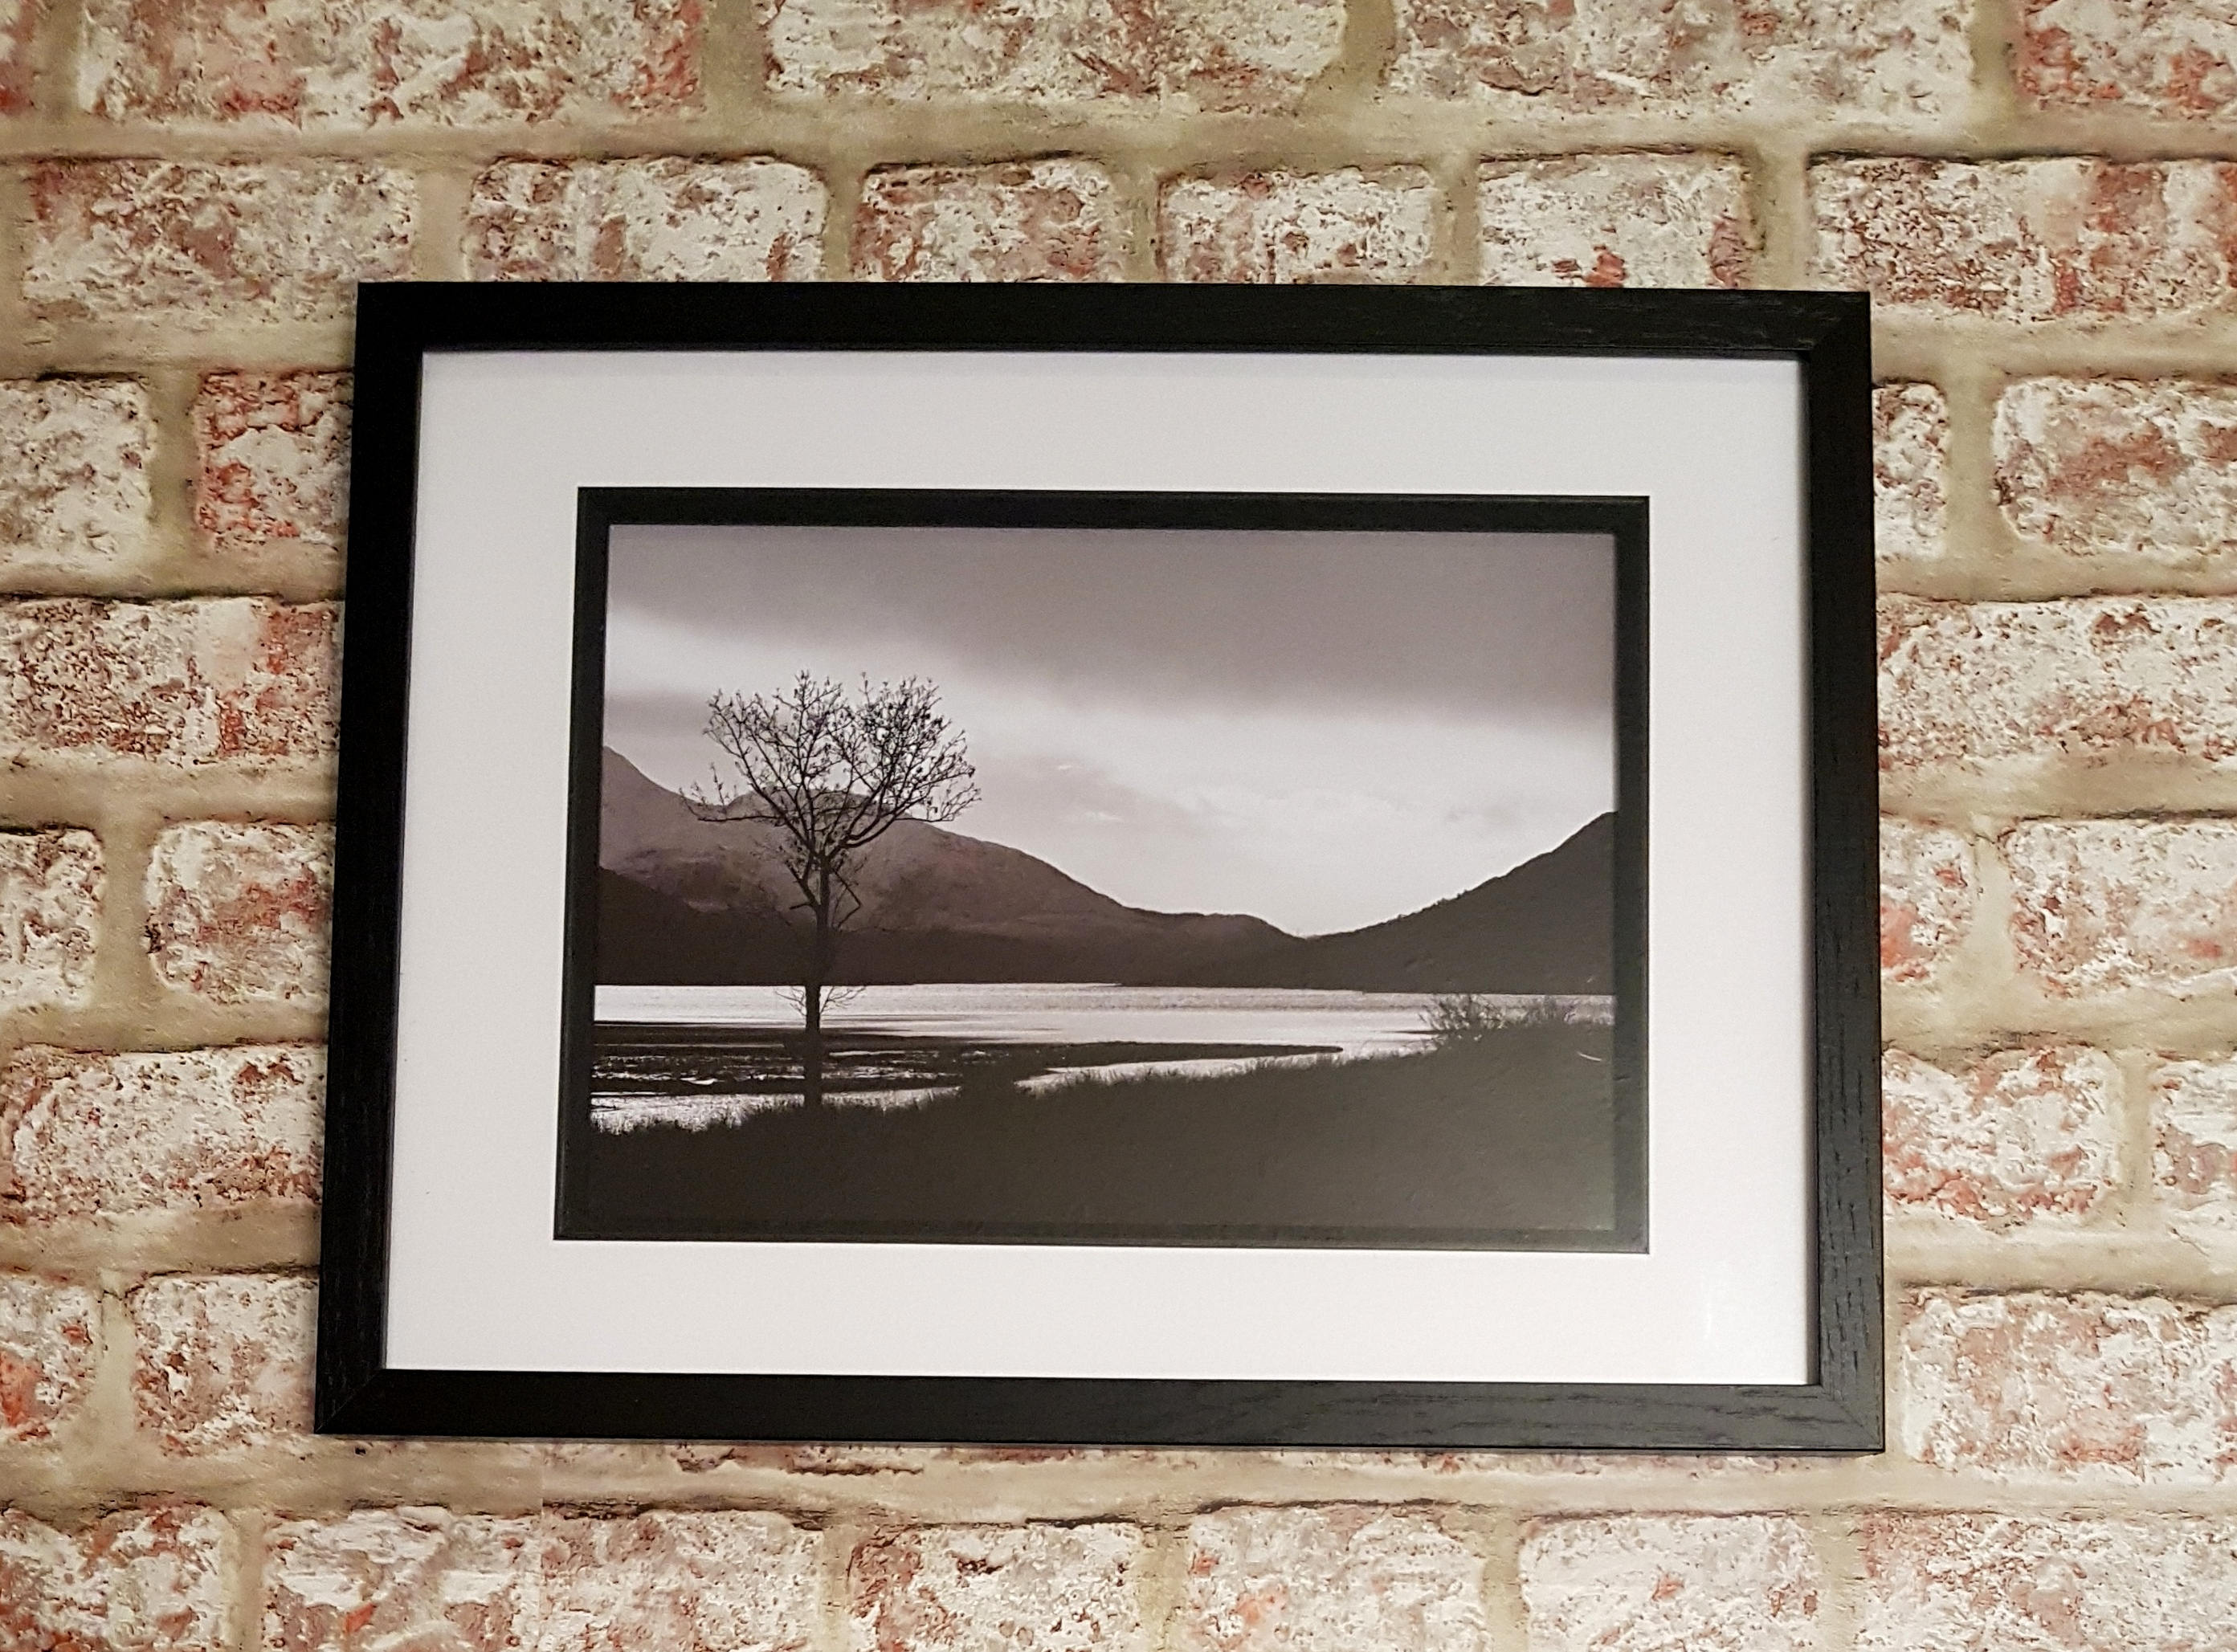 Loch Etive, Scottish Loch view, Glen Etive View, Banks Of Loch Eitve, A4 A3  Framed Print